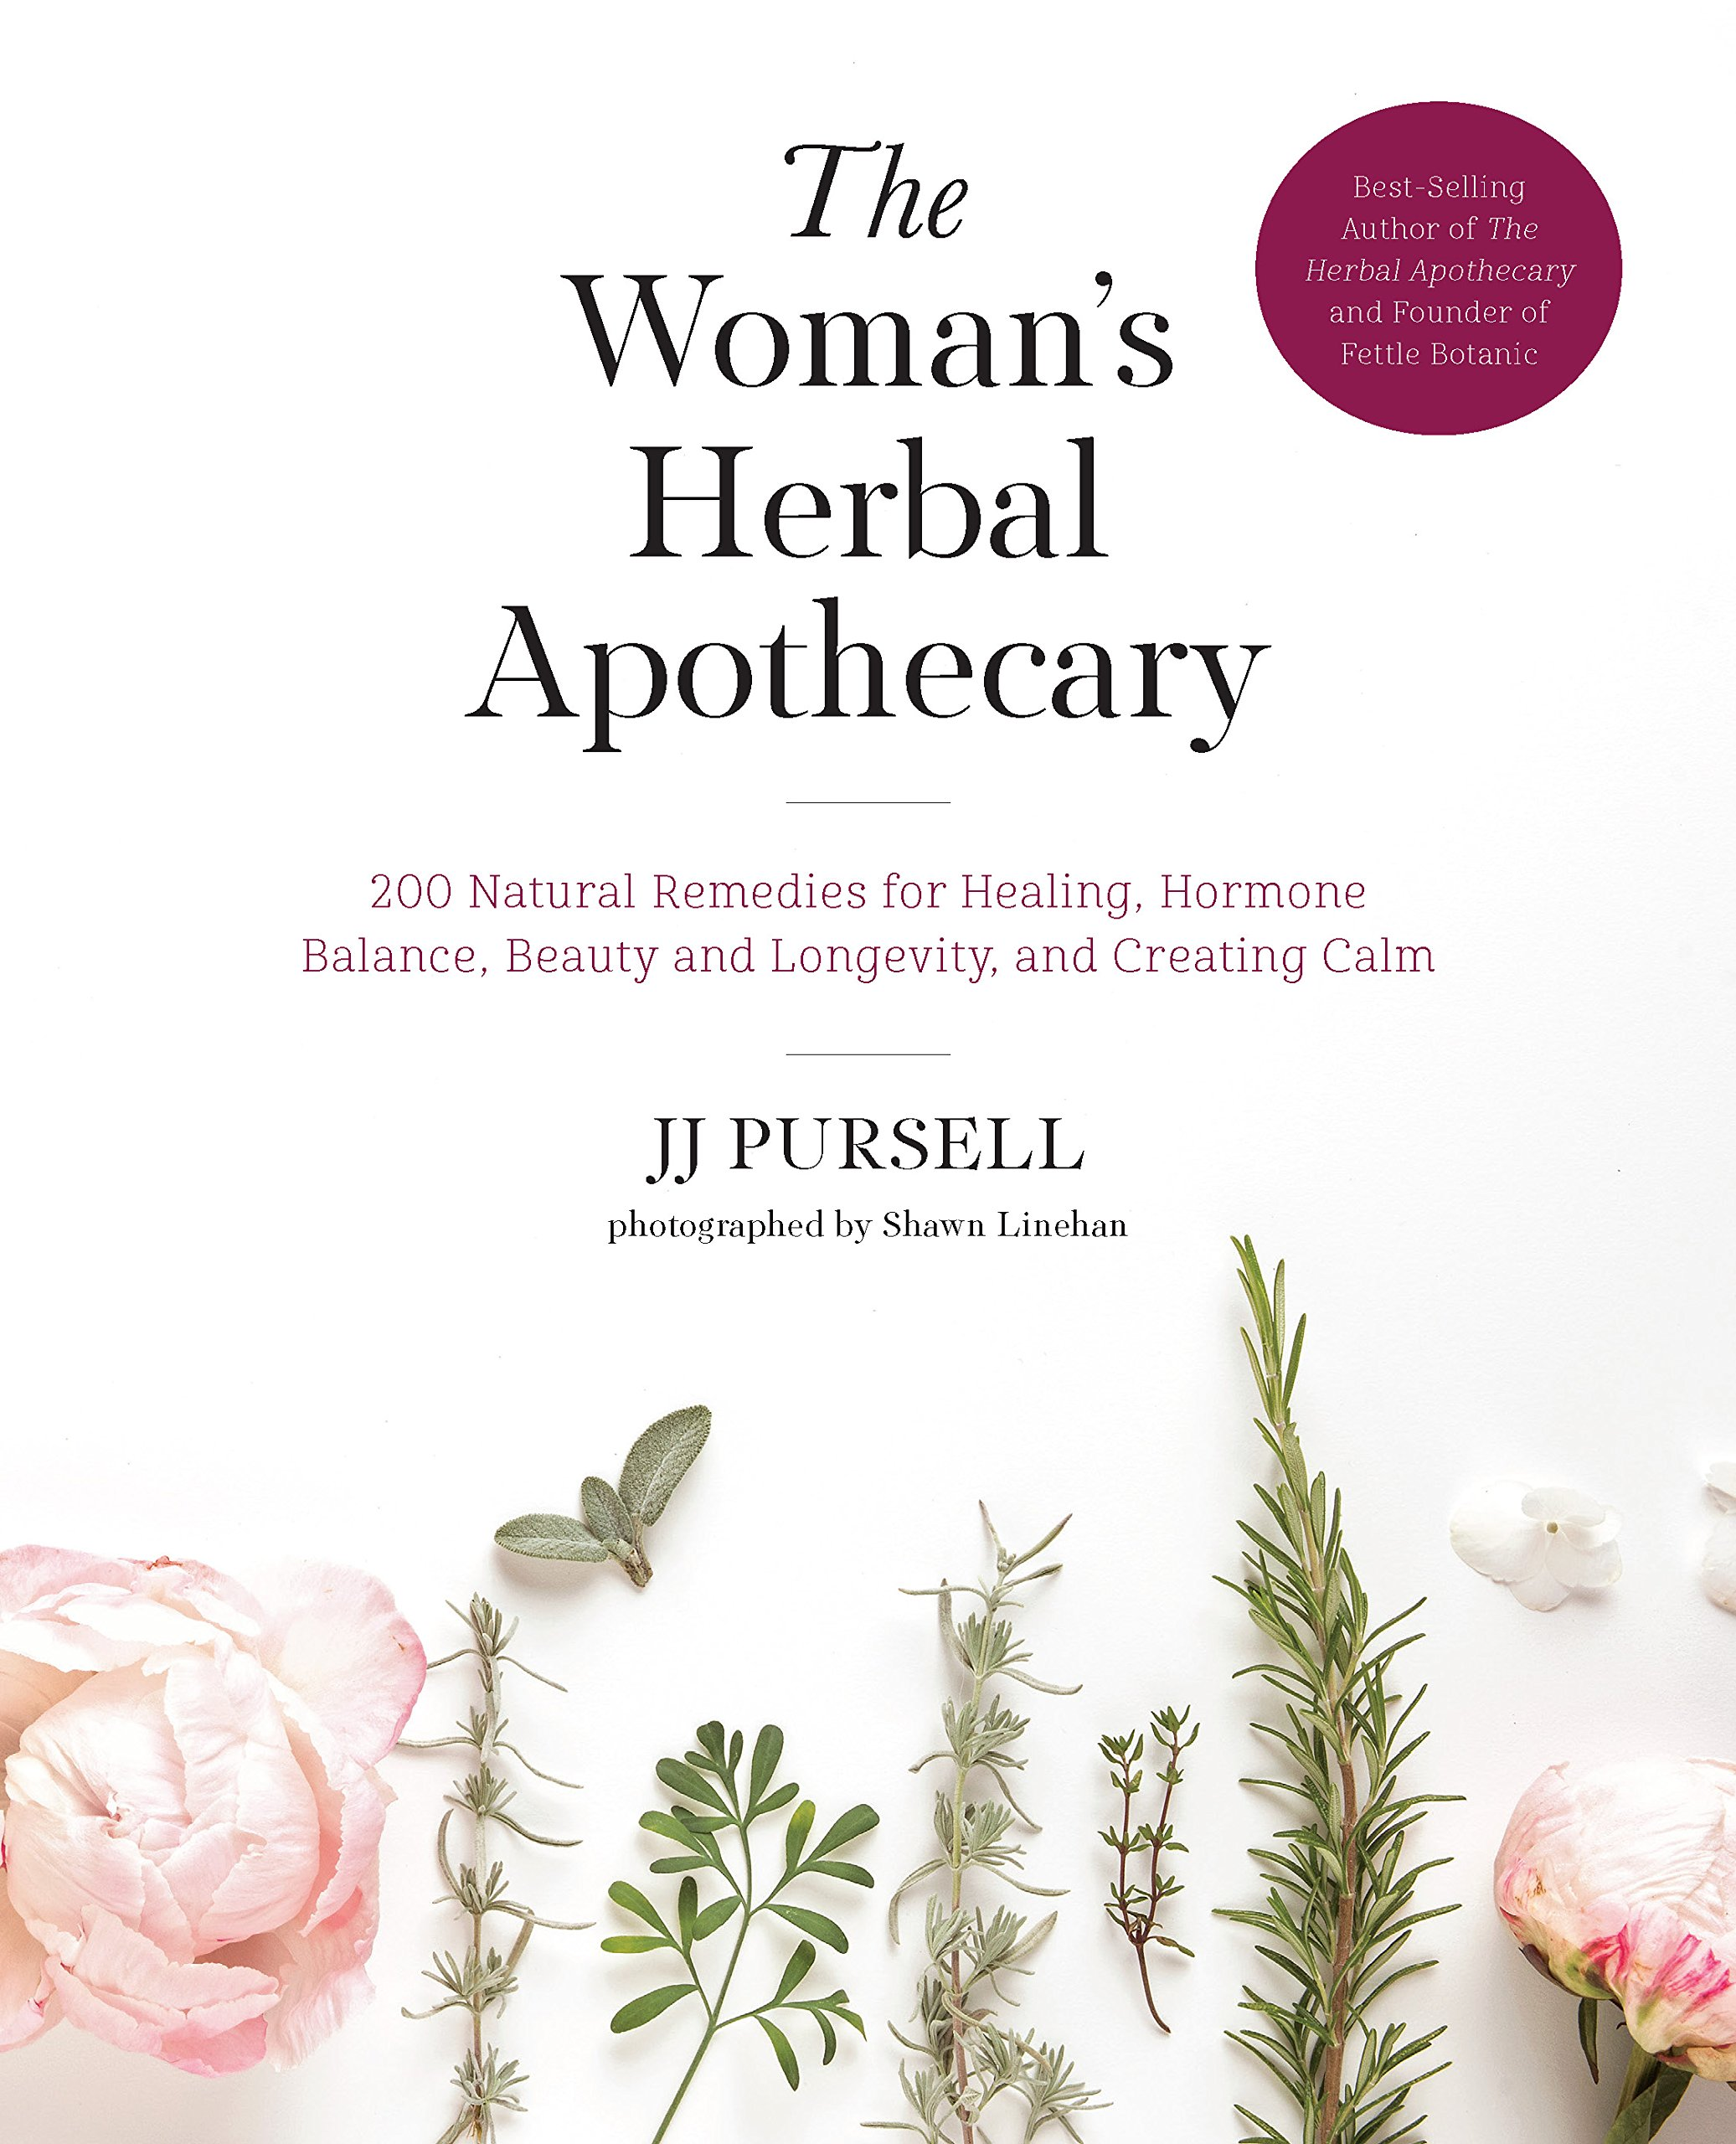 The Woman's Herbal Apothecary: 200 Natural Remedies for